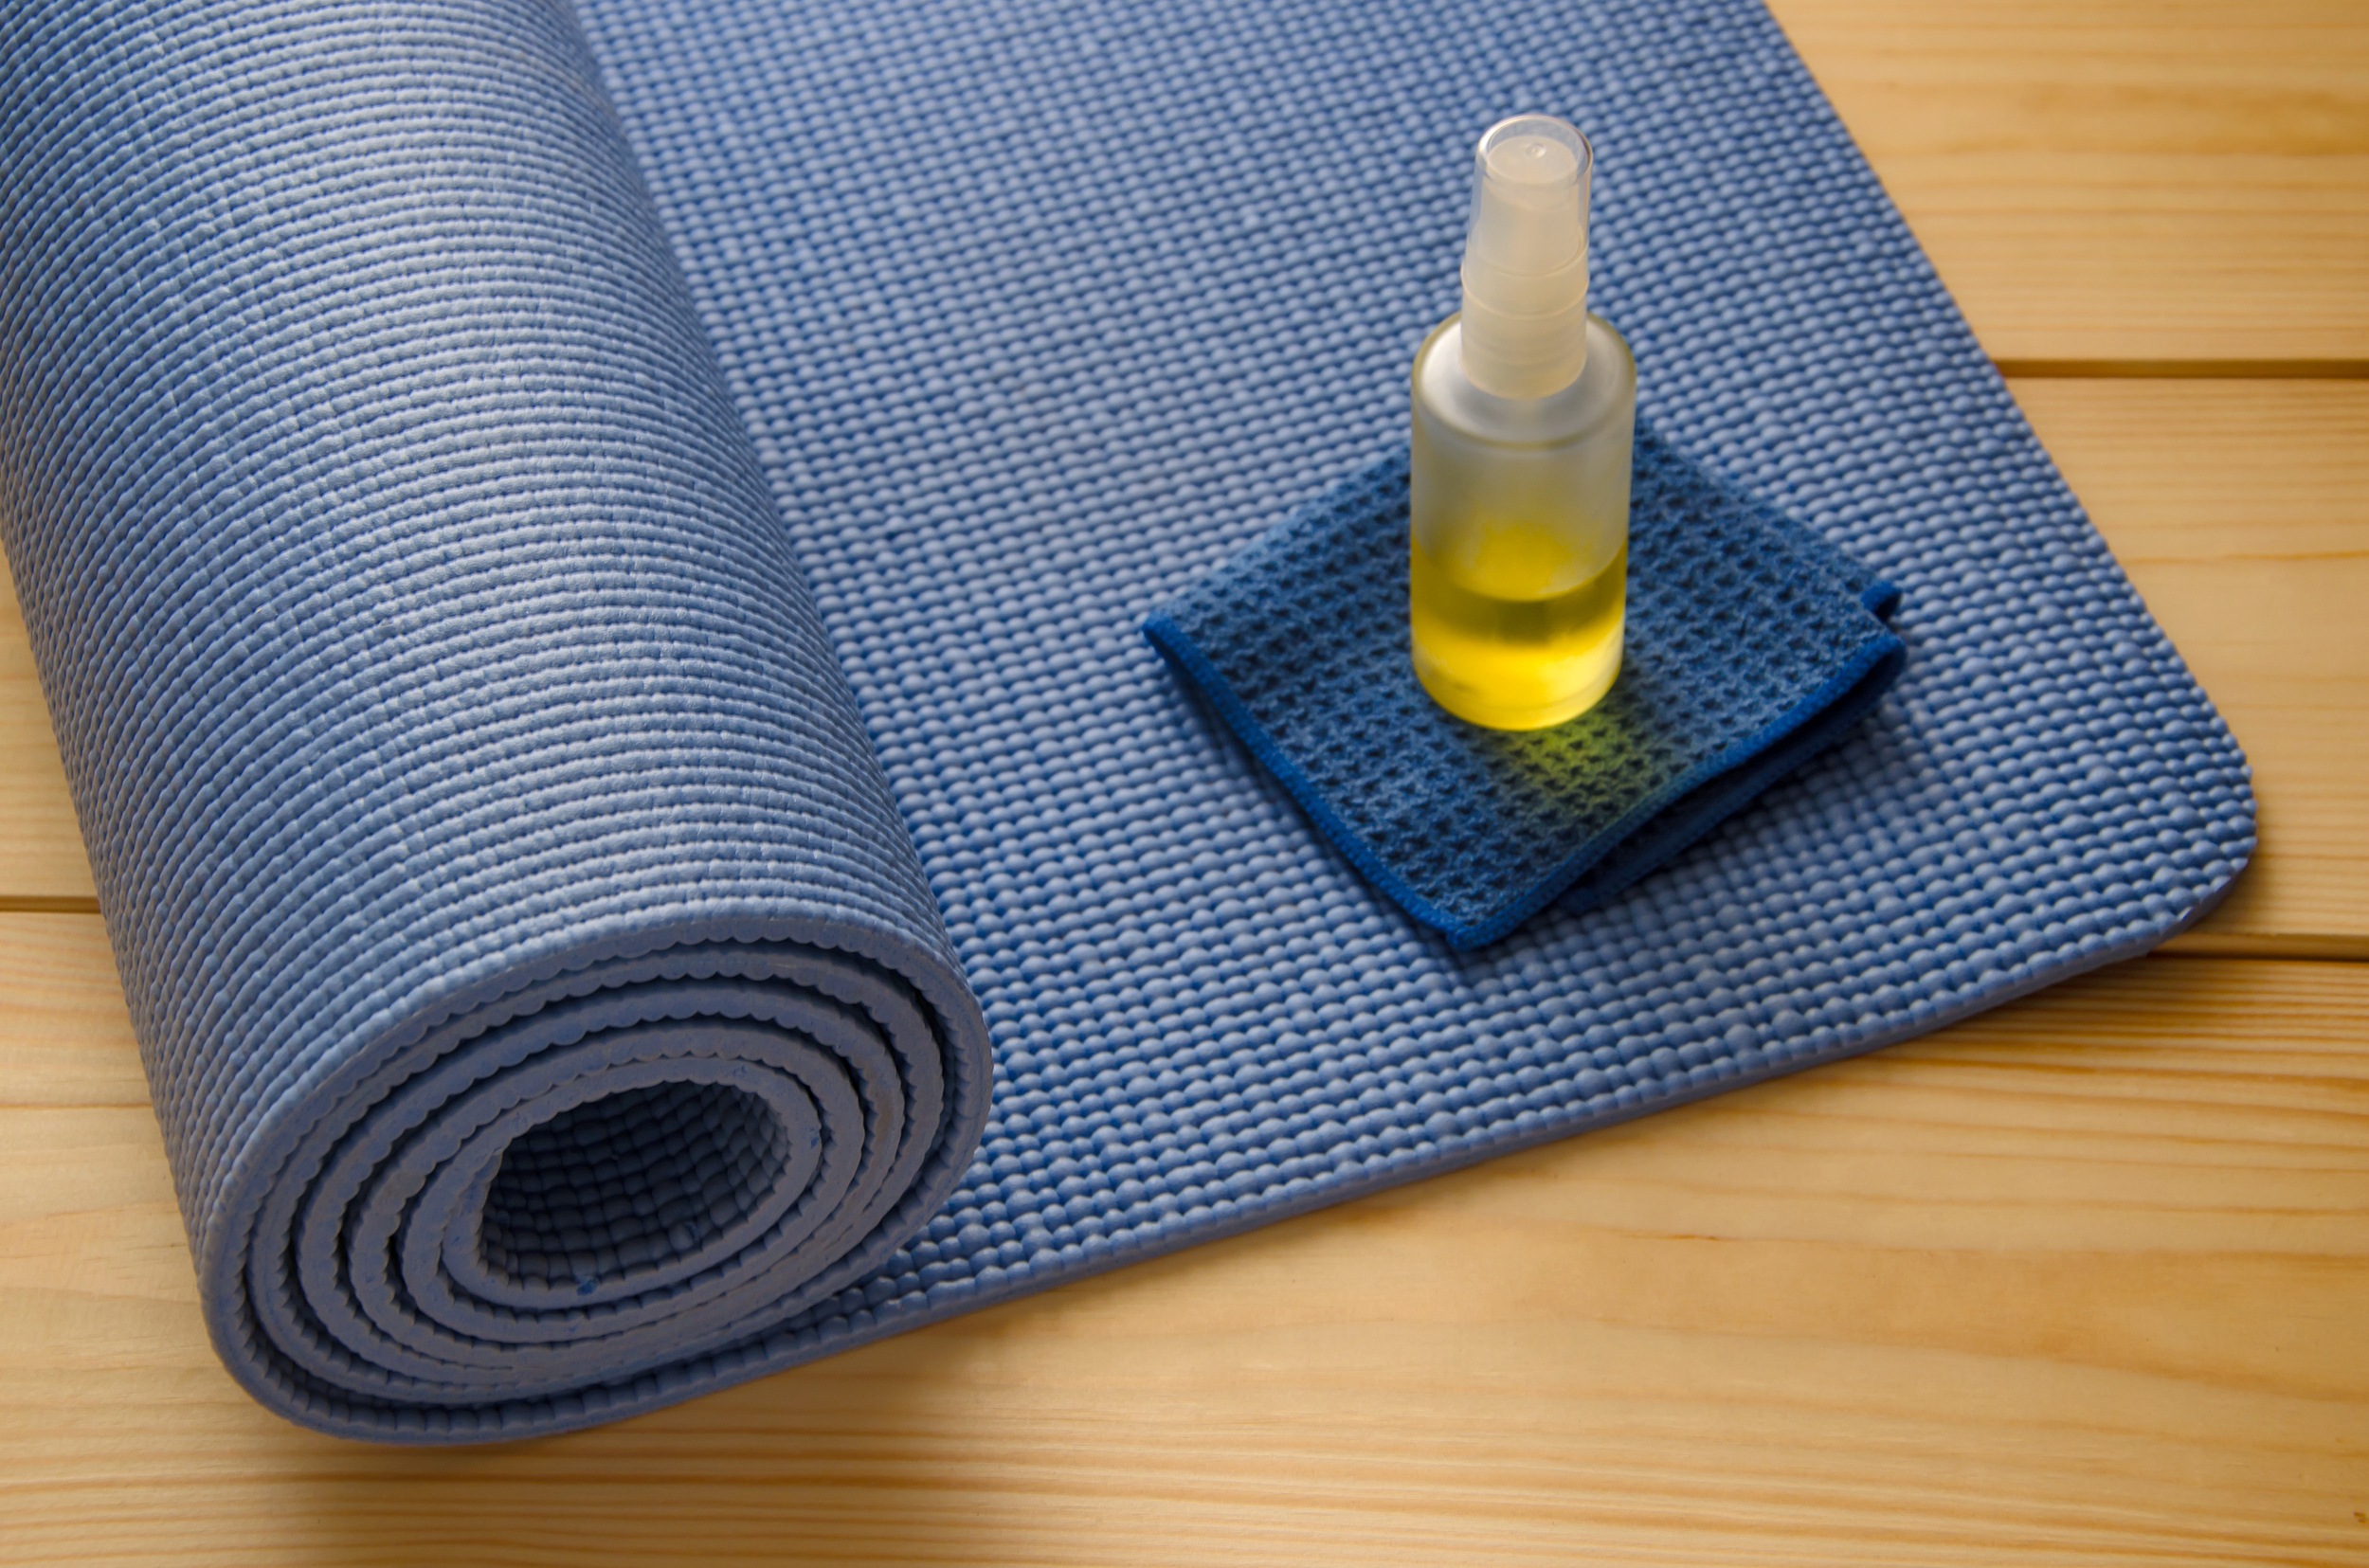 spray tasmanian hi tasmanianpepperlavender mat pepper mats wash yoga tpl products nz yogamatspray bondi lavender